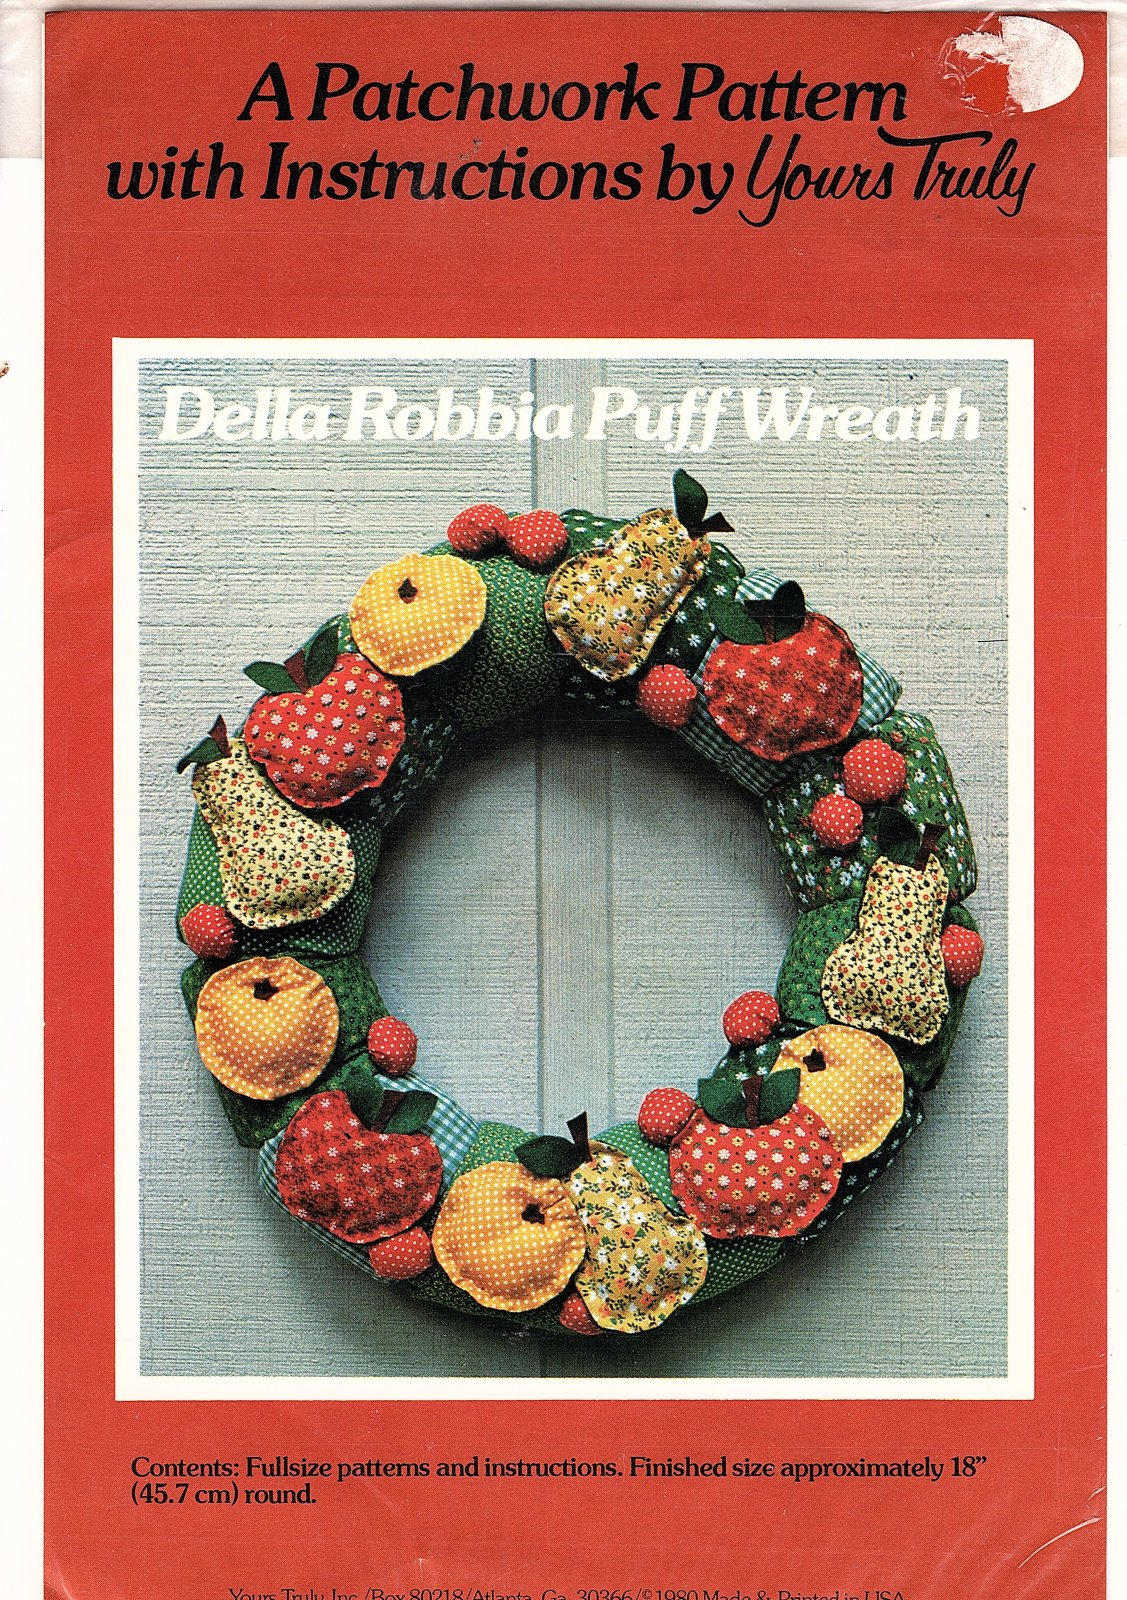 Della Robbia Puff Wreath - A Patchwork Pattern by Yours Truly -18 round